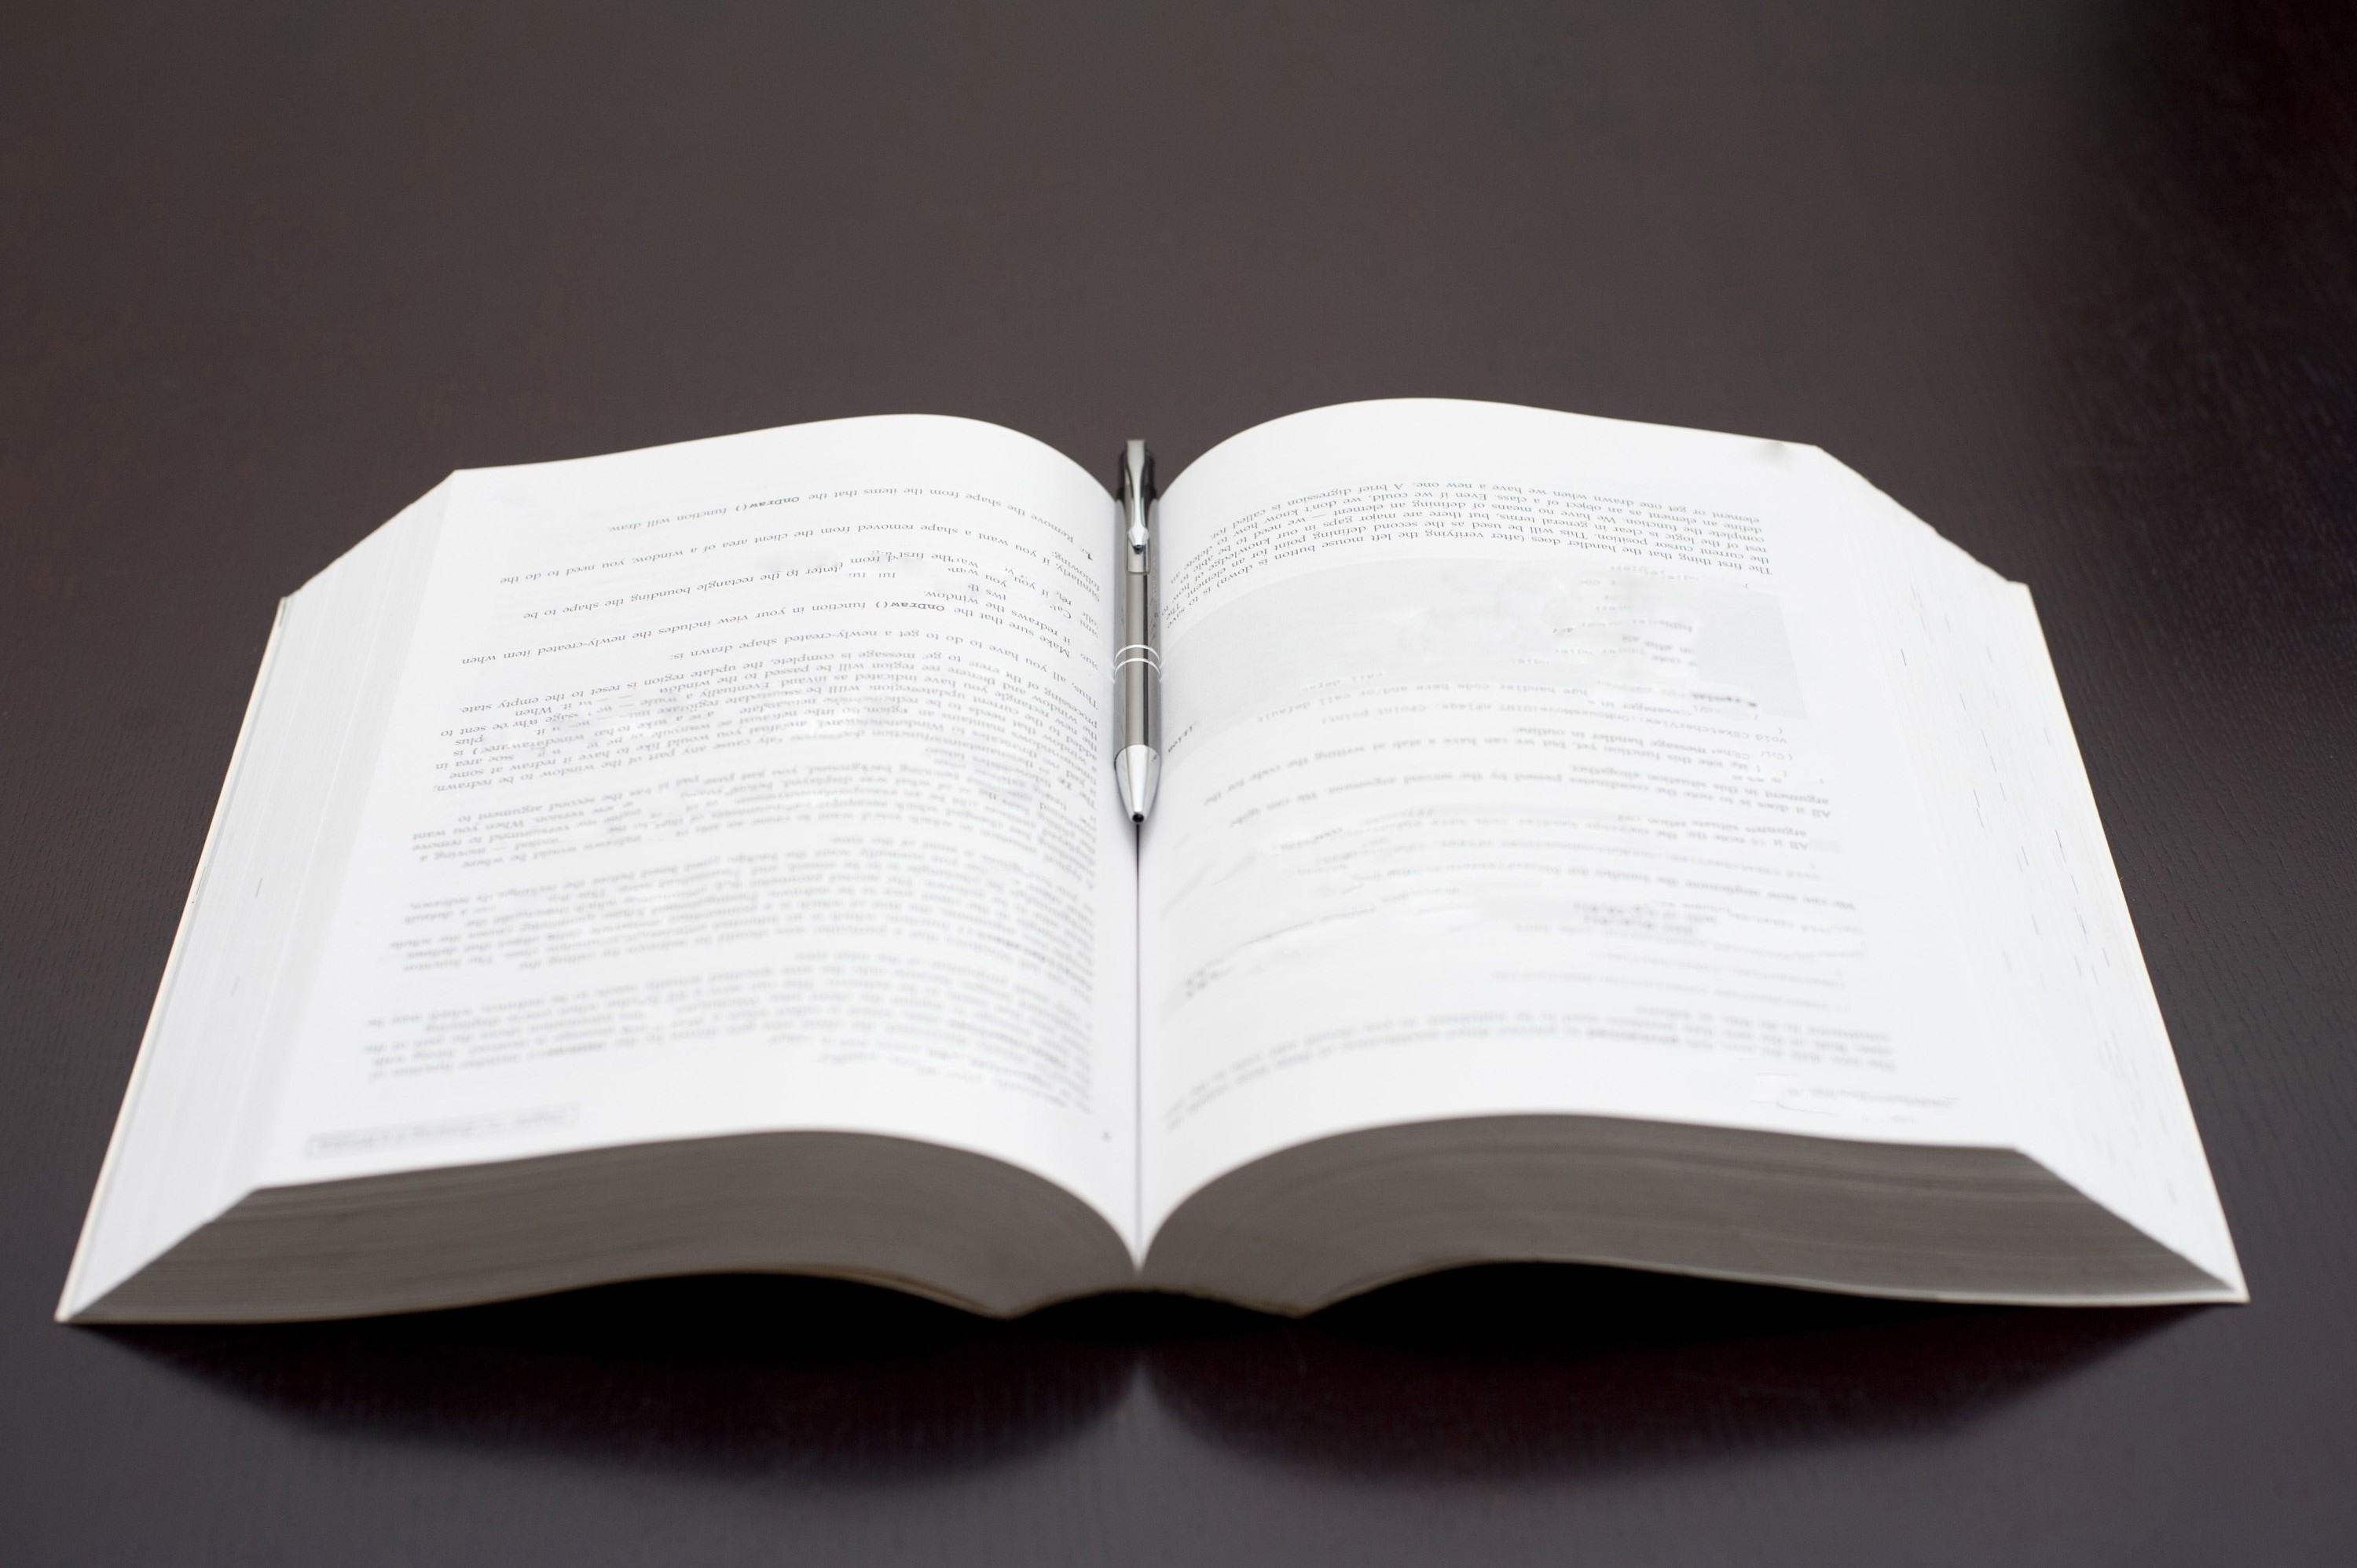 Free image of Open book and pen